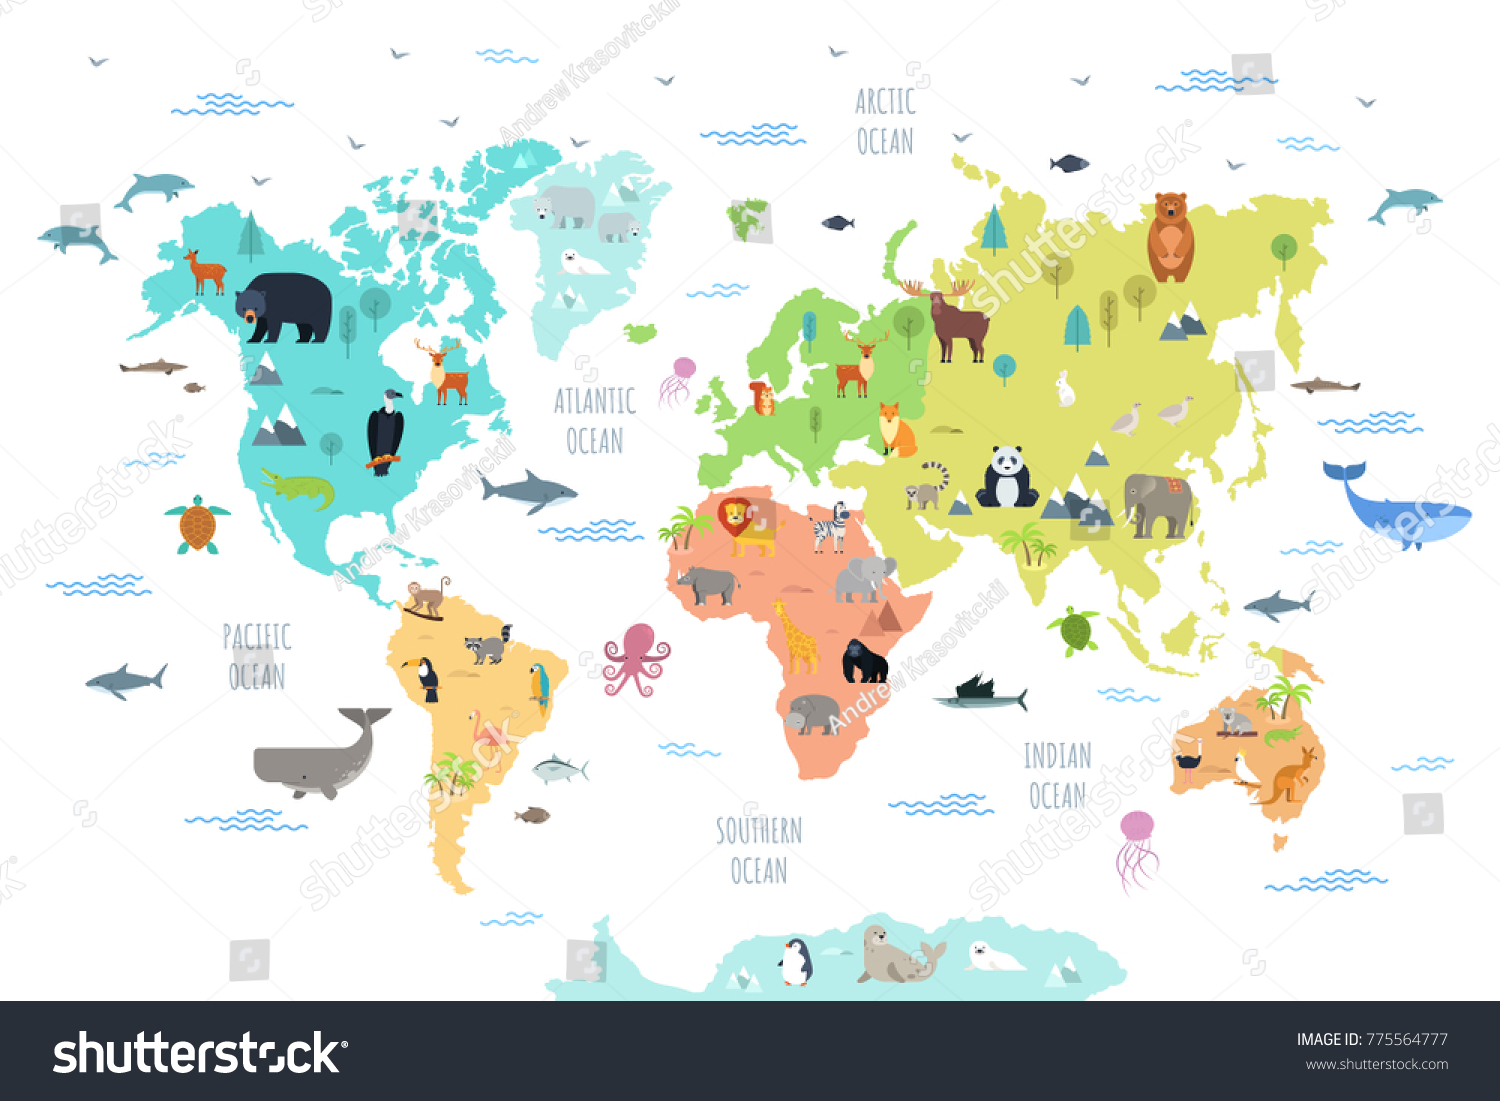 World map wild animals living on stock vector hd royalty free world map with wild animals living on various continents and in oceans cute cartoon mammals gumiabroncs Image collections